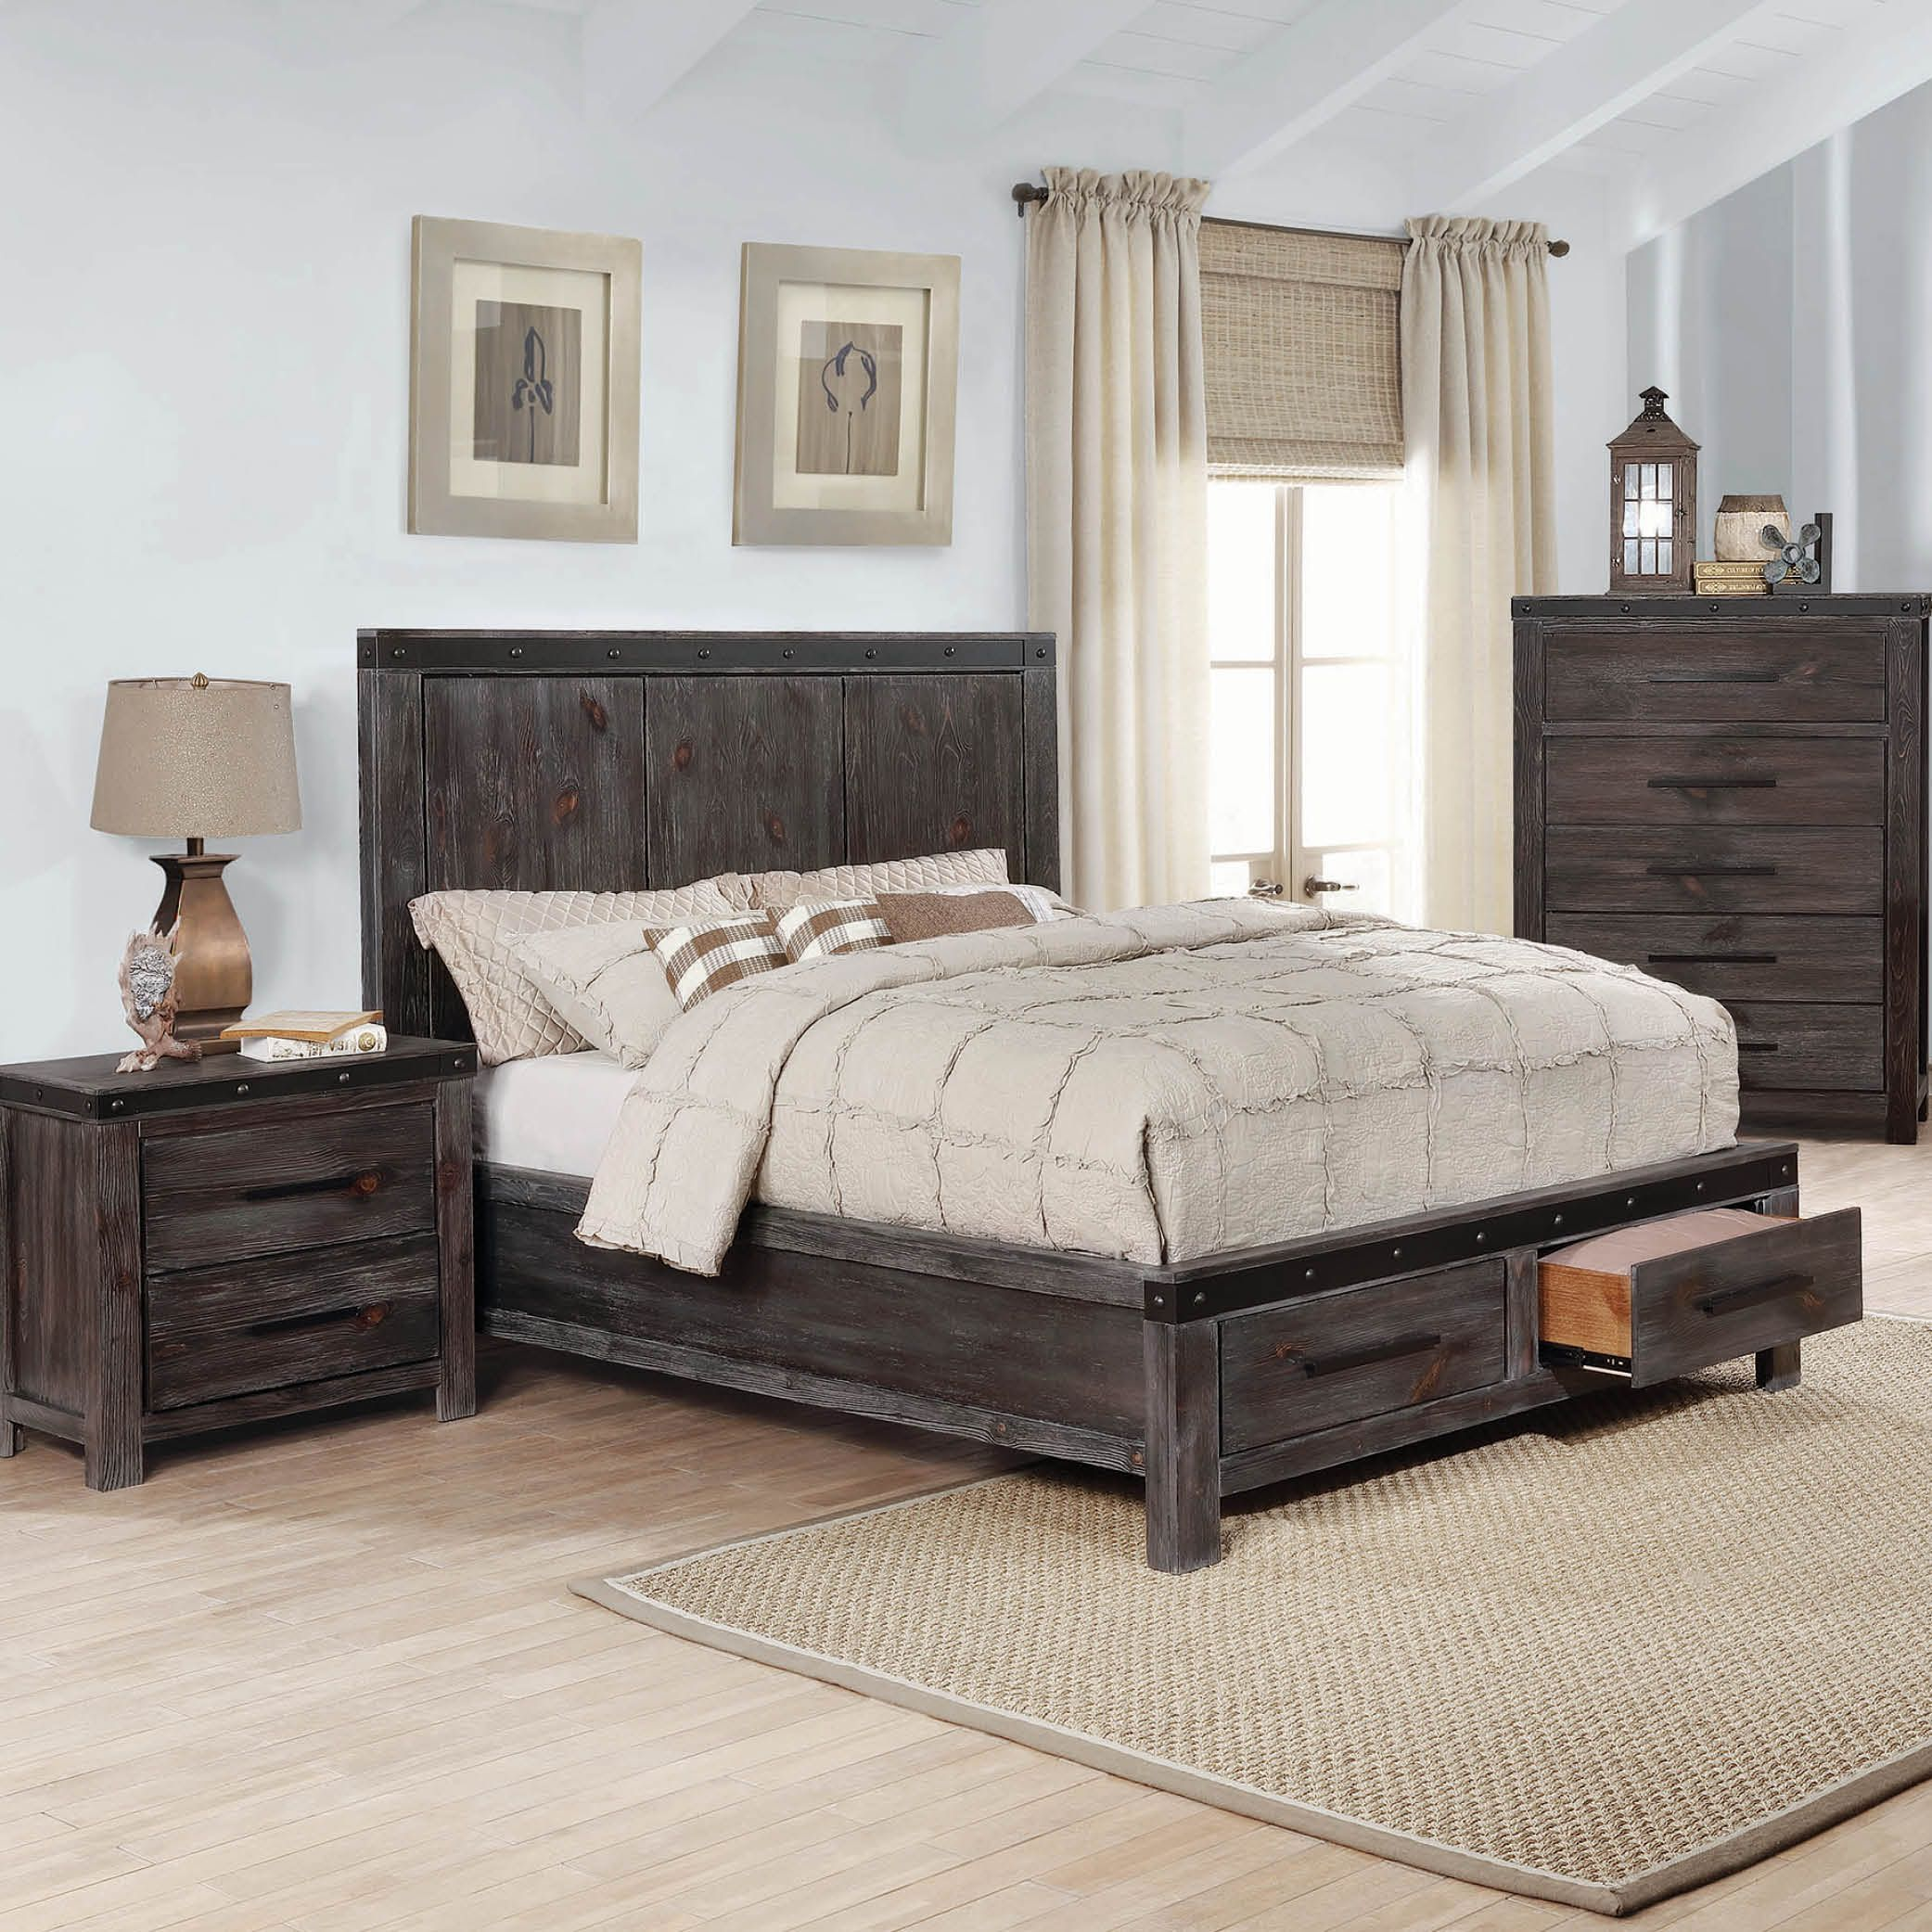 The Barkley Collection The Best Of American Rustic